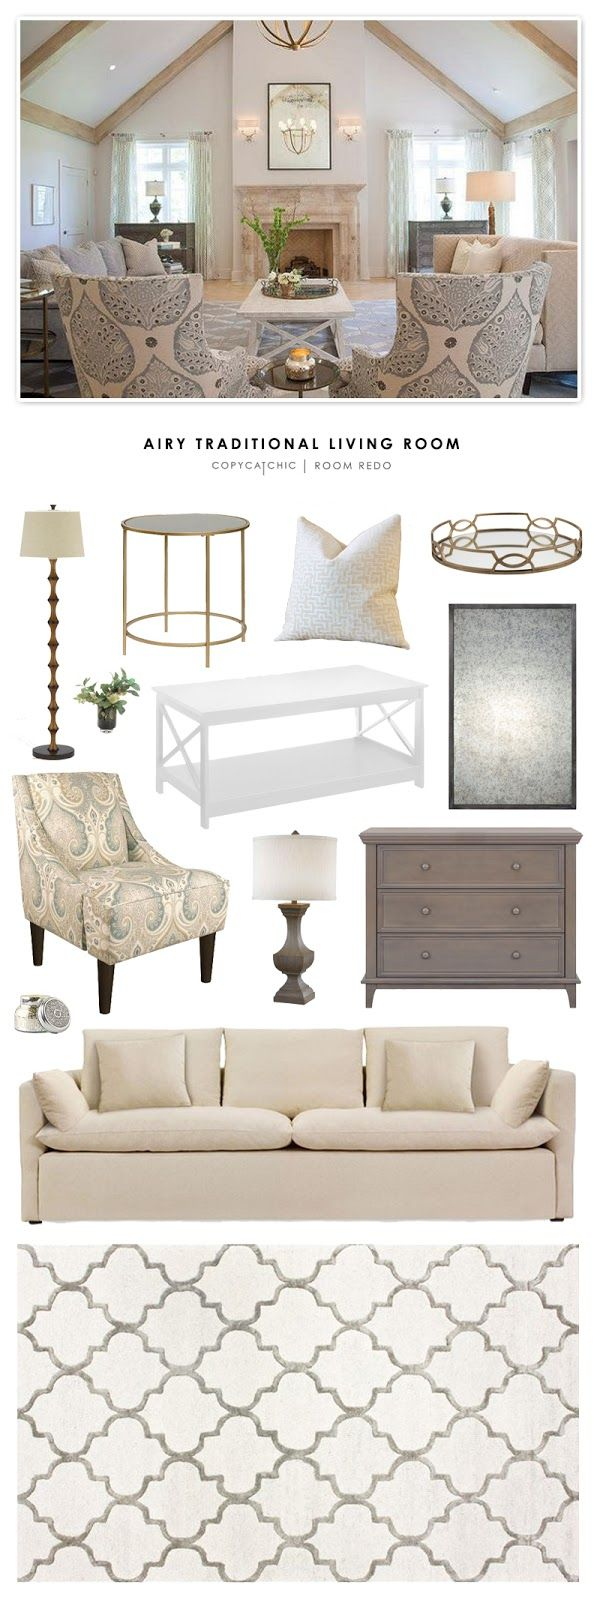 Copy Cat Chic Room Redo Traditional Decortraditional Furnituretraditional Living